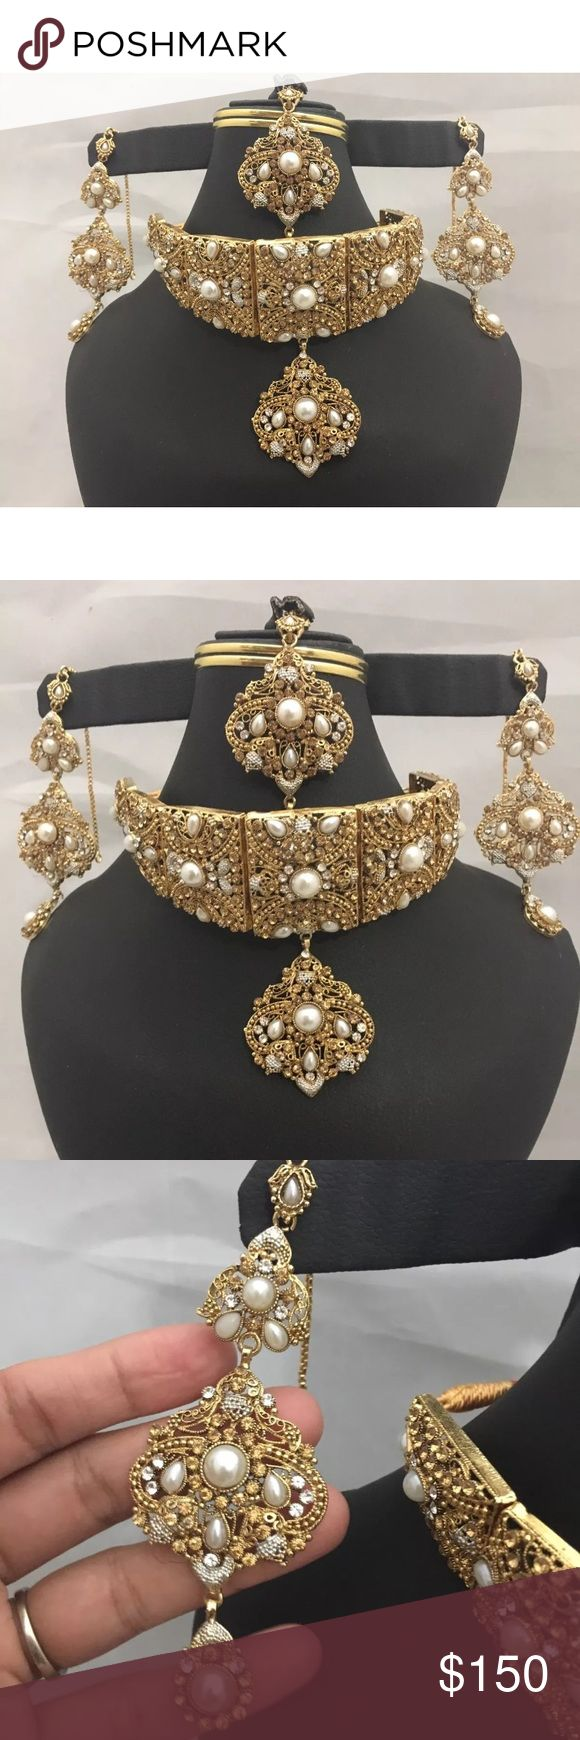 NWOT Indian Bollywood jewelry set NWOT Indian latest bridal two Toned silver / golden Polki Jaraao choker style jewelry set . Include choker attached with rope to make loose or tight .Long earrings and matha Tikka Set attached with rhinestones, and Pearl Beads Extremely beautiful in front .pictures are not doing justice.  All sales are final no return or exchange accepted. Thank you Jewelry Necklaces